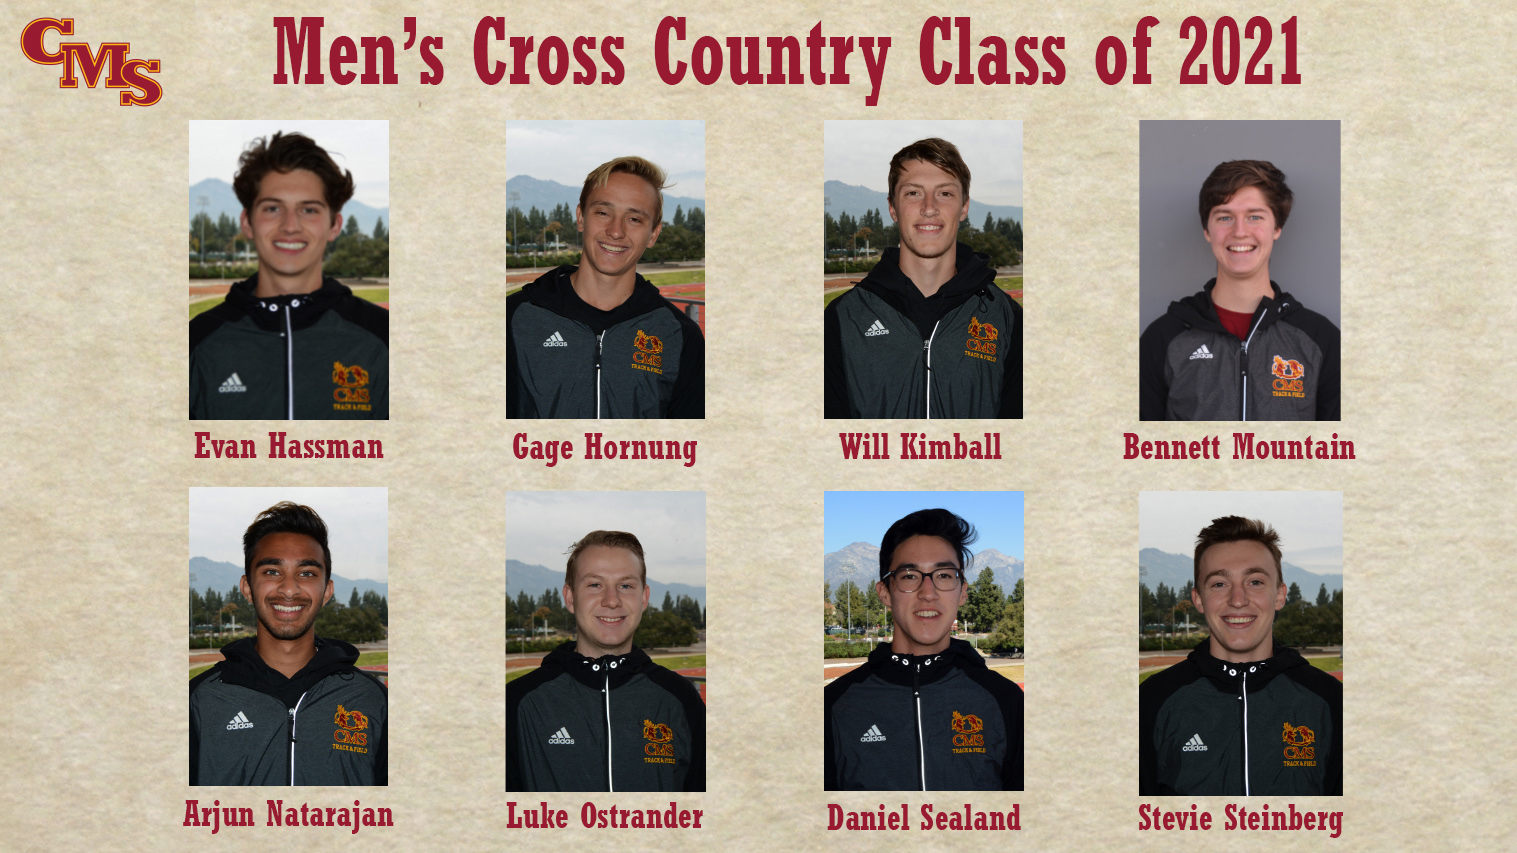 CMS Men's Cross Country Class of 2021 Head Shots